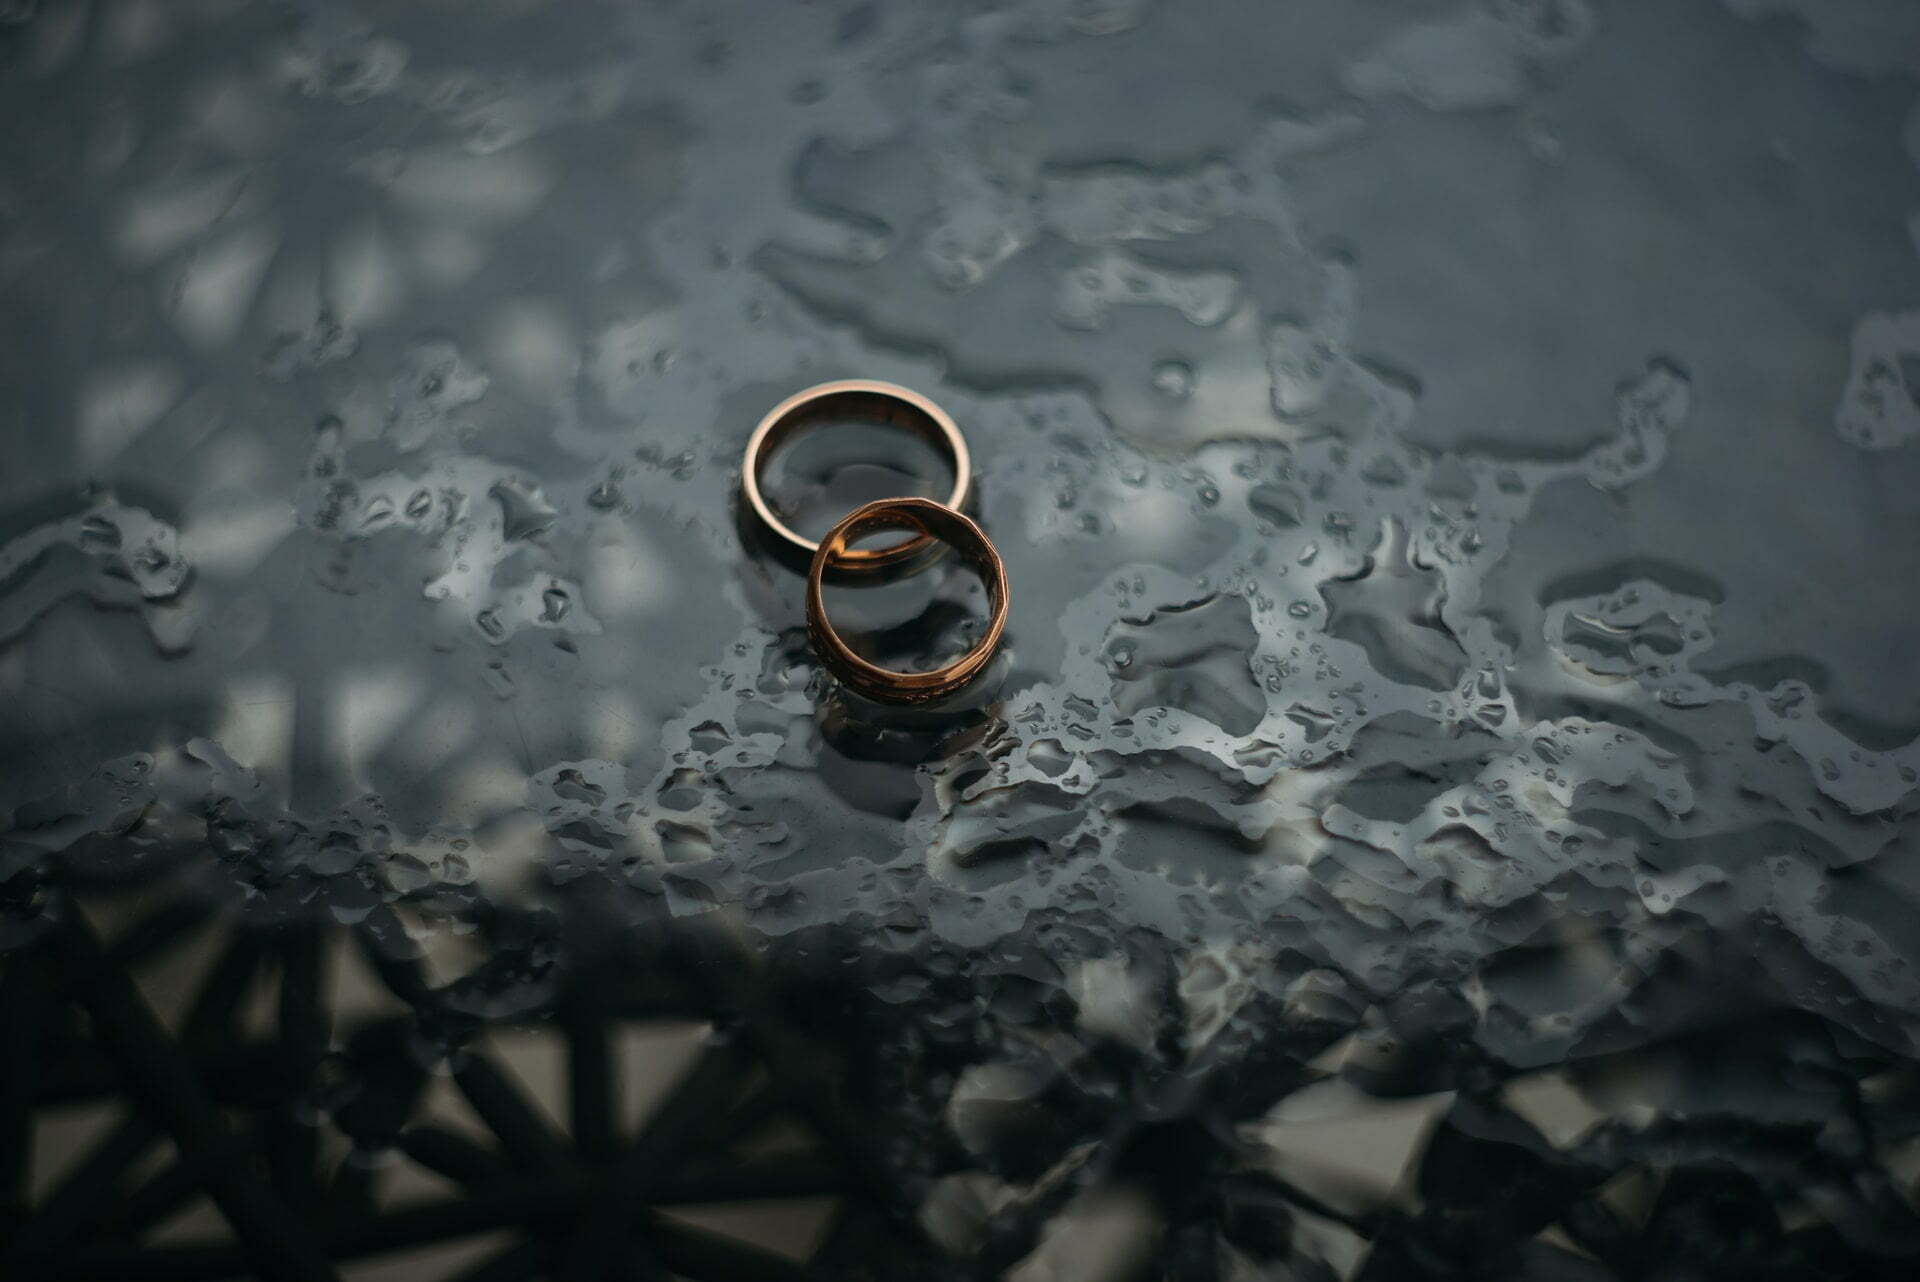 two rings left out in the rain